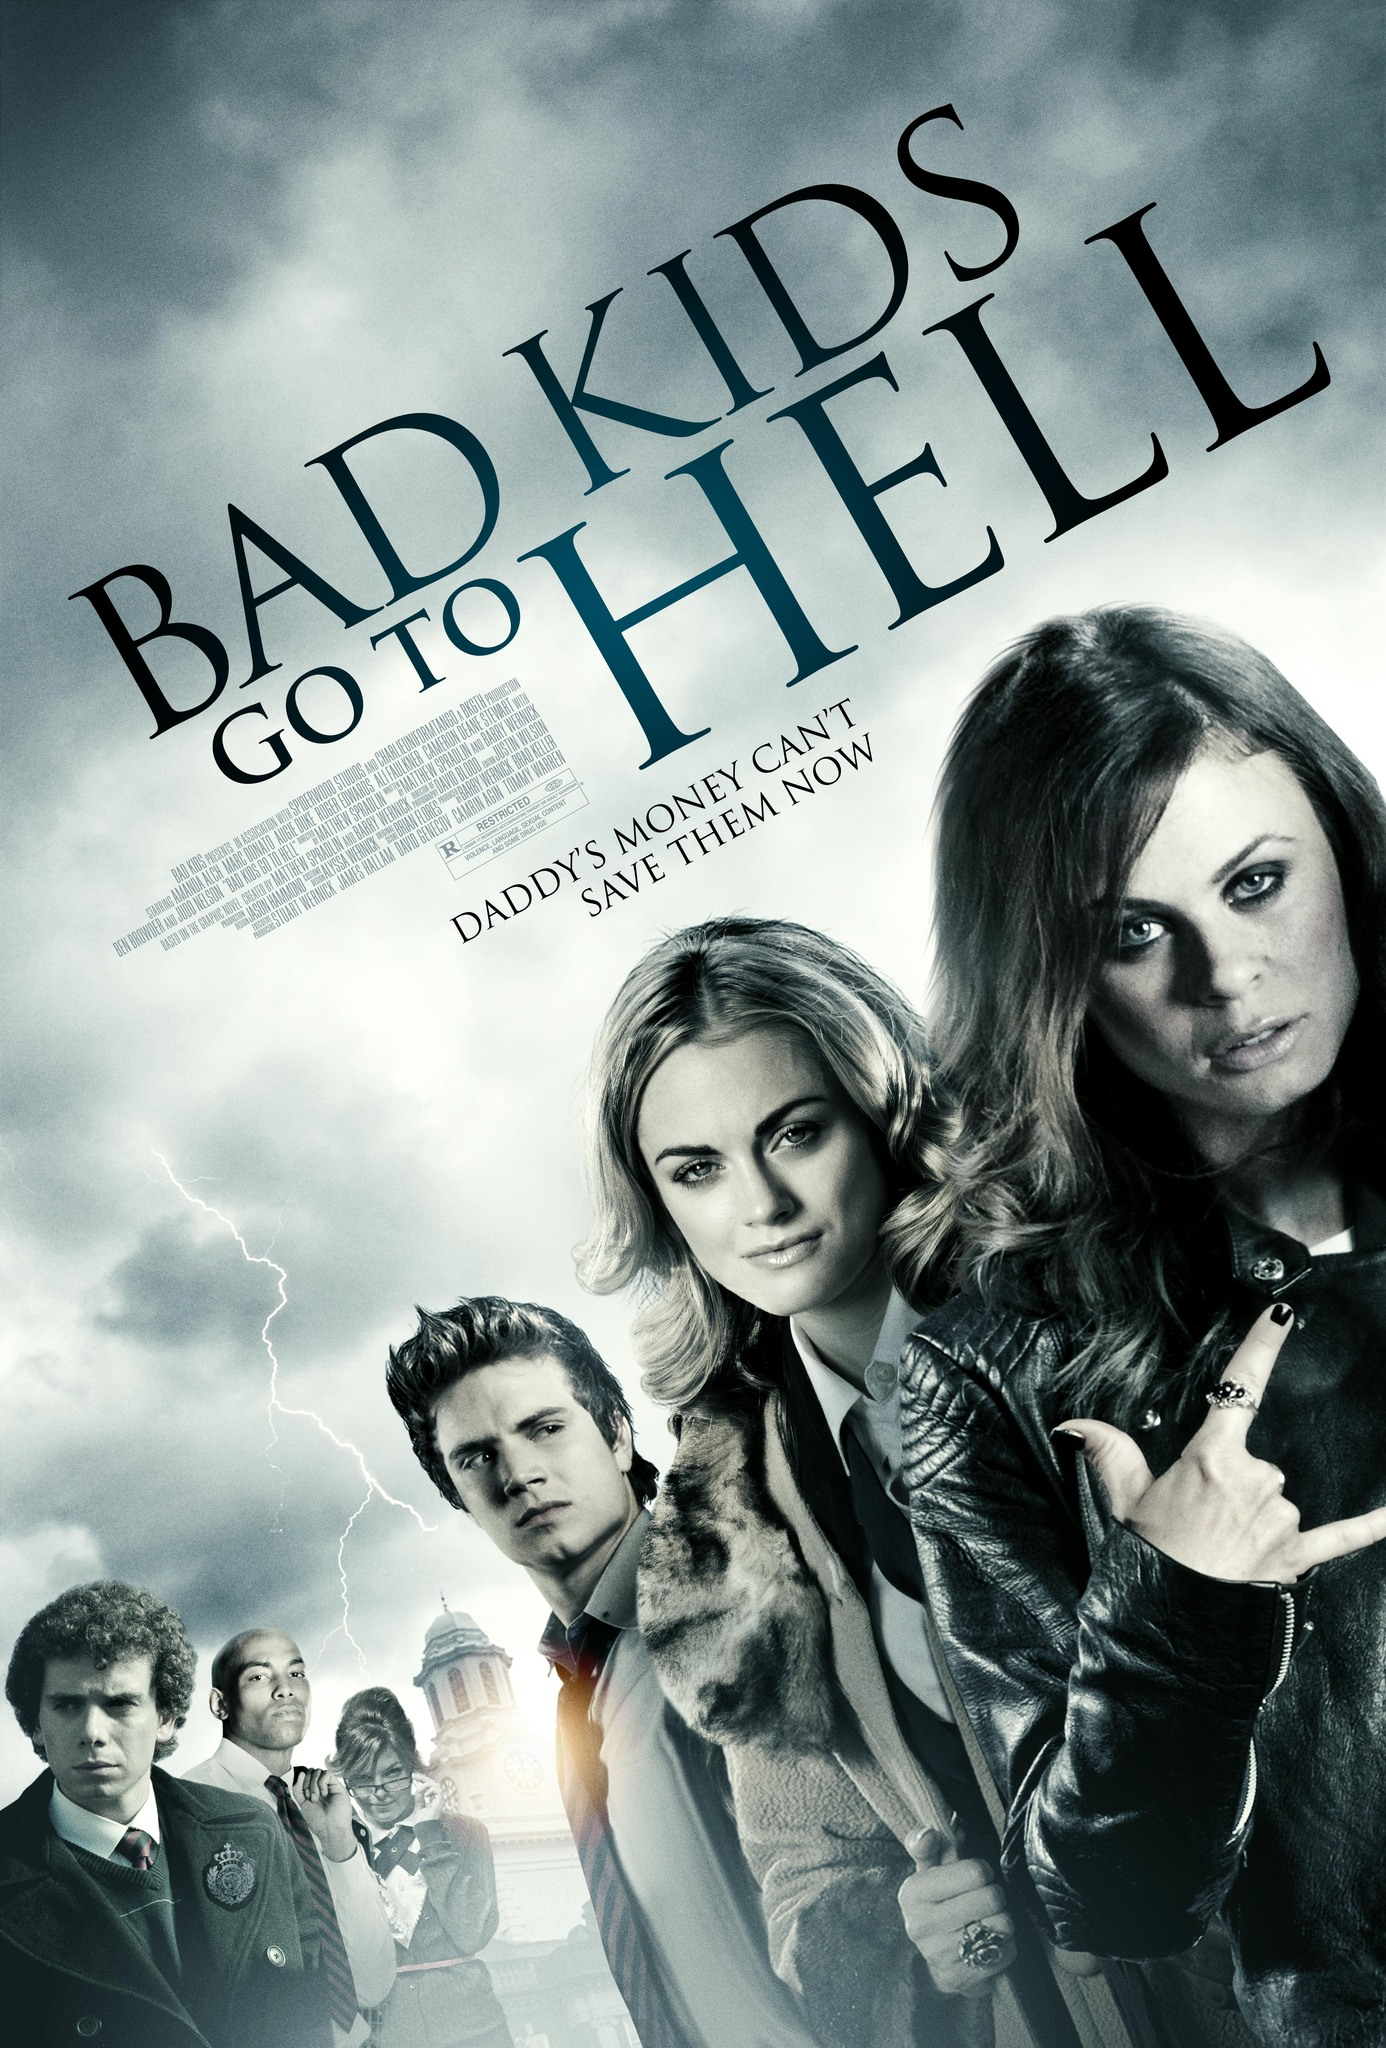 Marc Donato, Amanda Alch, Roger Edwards, Augie Duke, Ali Faulkner, and Cameron Deane Stewart in Bad Kids Go to Hell (2012)